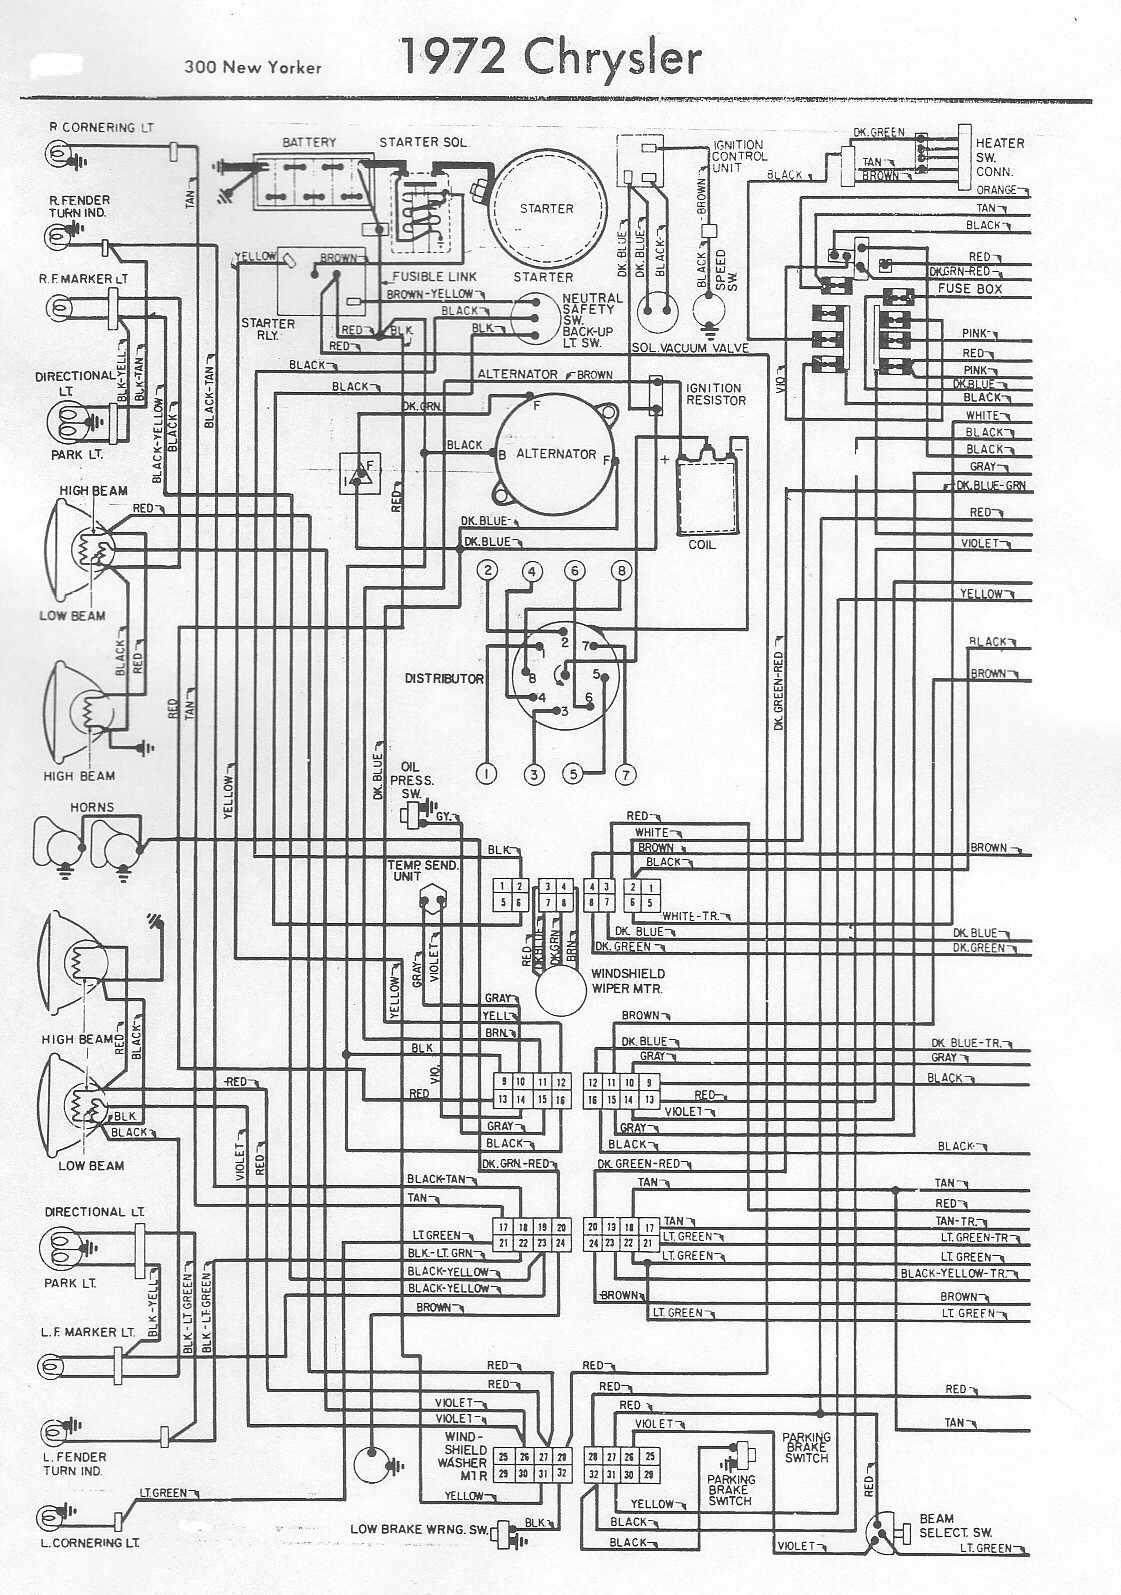 Electrical Wiring Diagram Of Chrysler New Yorker